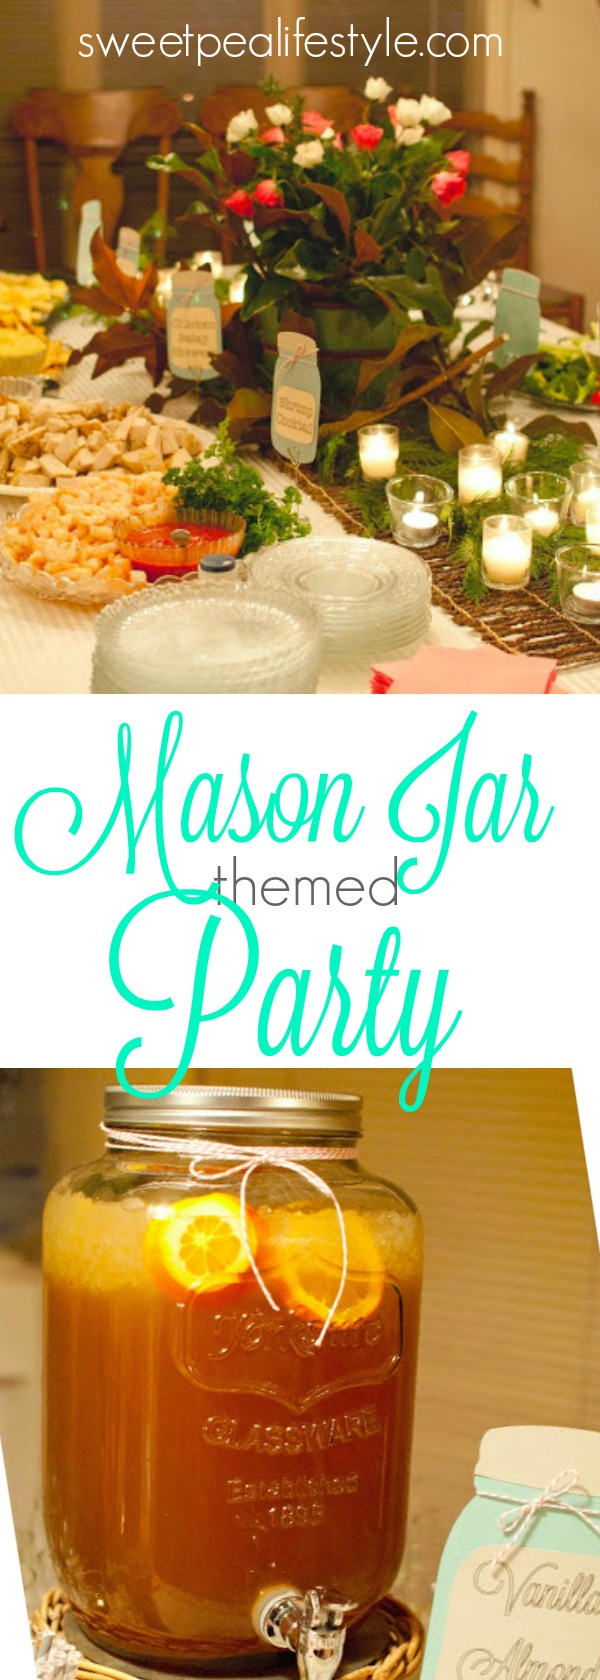 How to Host a Mason Jar Themed Shower